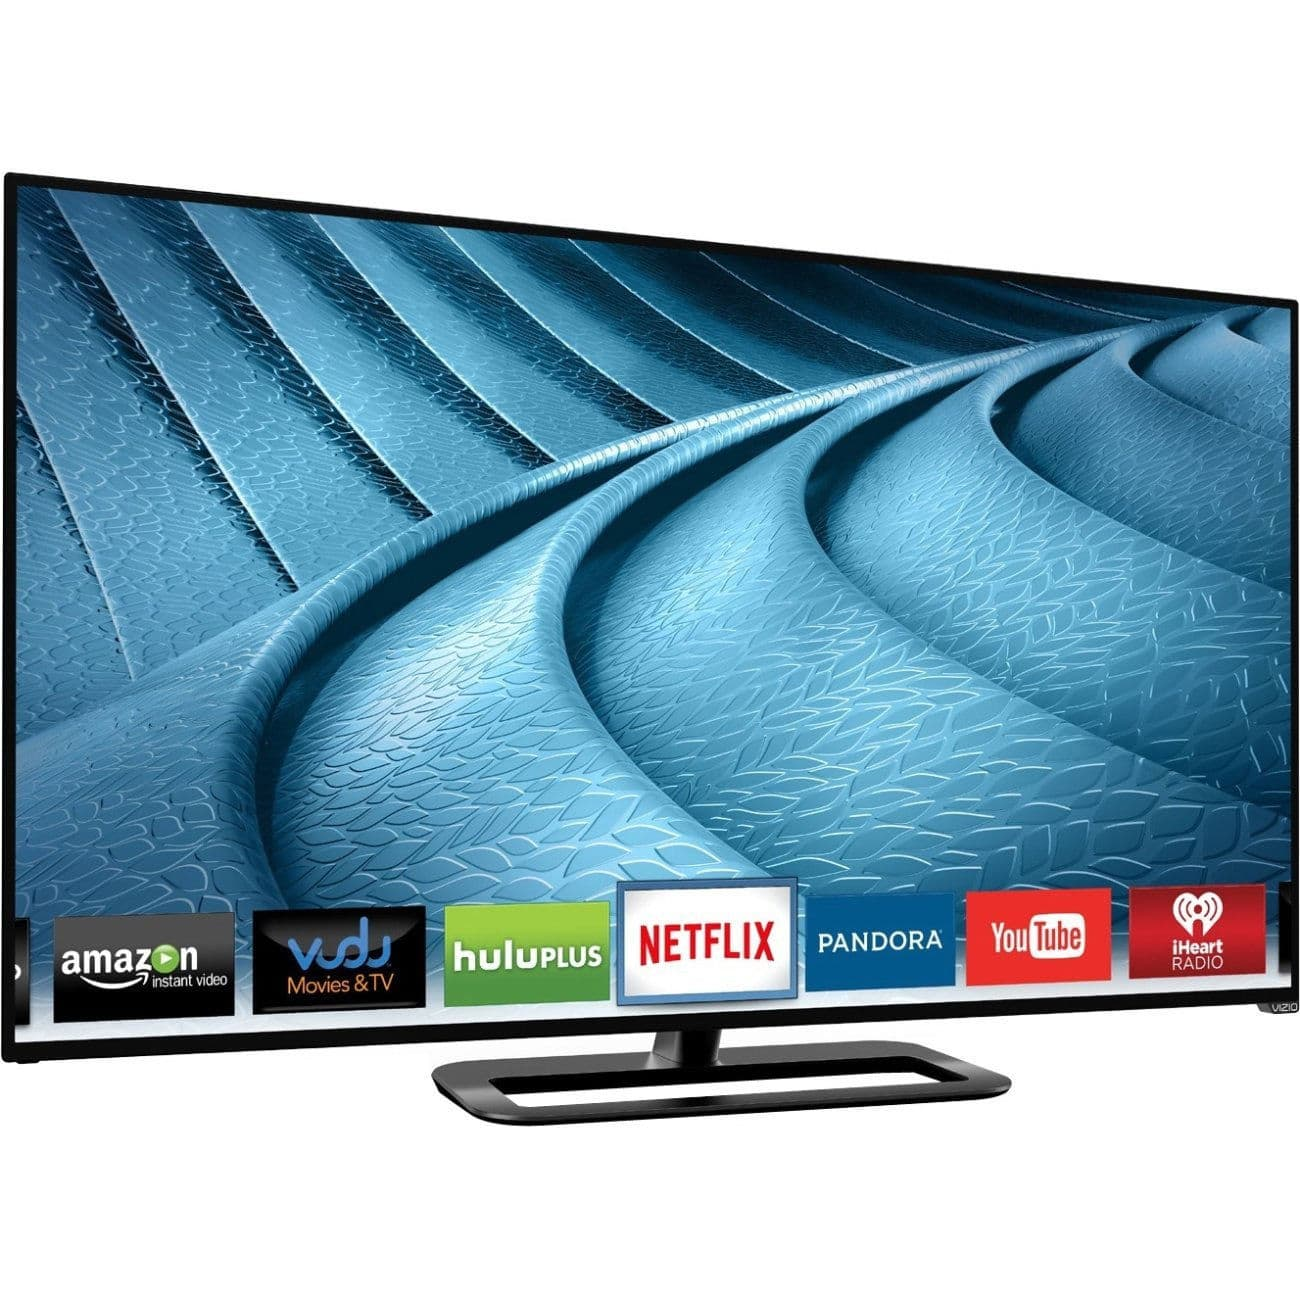 Vizio P502ui-B1 50-Inch 4K 240hz Ultra HD Smart LED HDTV (Refurbished) $500 + Free Shipping!